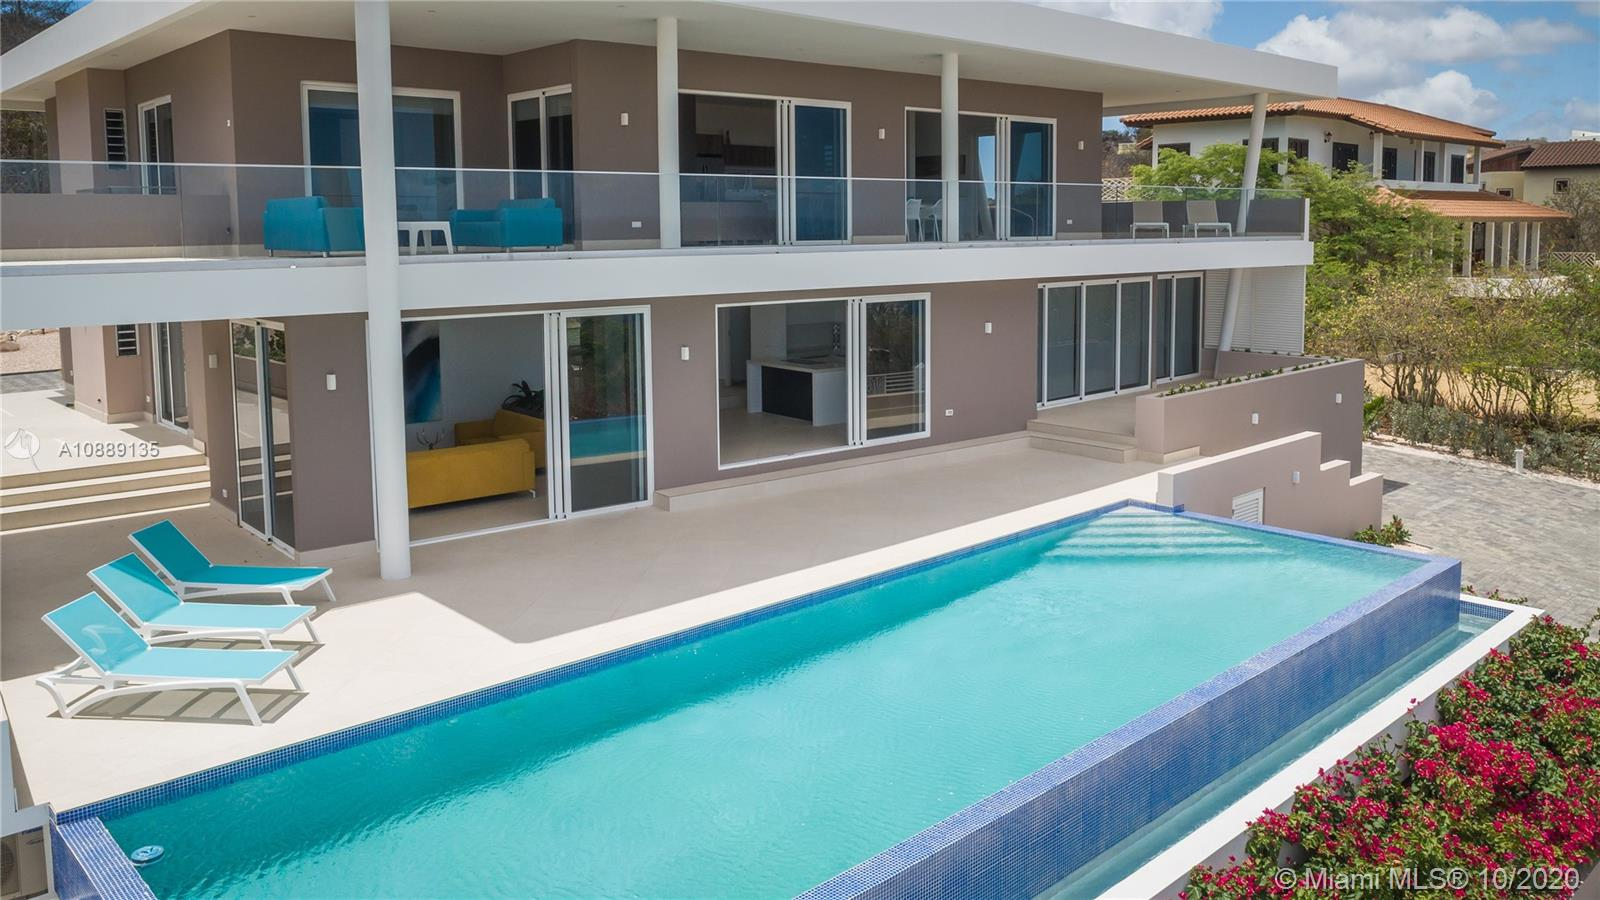 The Villa is a 6 bedrooms with 4 full bathrooms and 2 1/2 bathroomsTotal indoor/outdoor living space is 711 Sq. M2  or  7600. Sq. Feet.The large Lot is Aprox. 1800 Sq. M2 or 20,000. Sq. Feet.